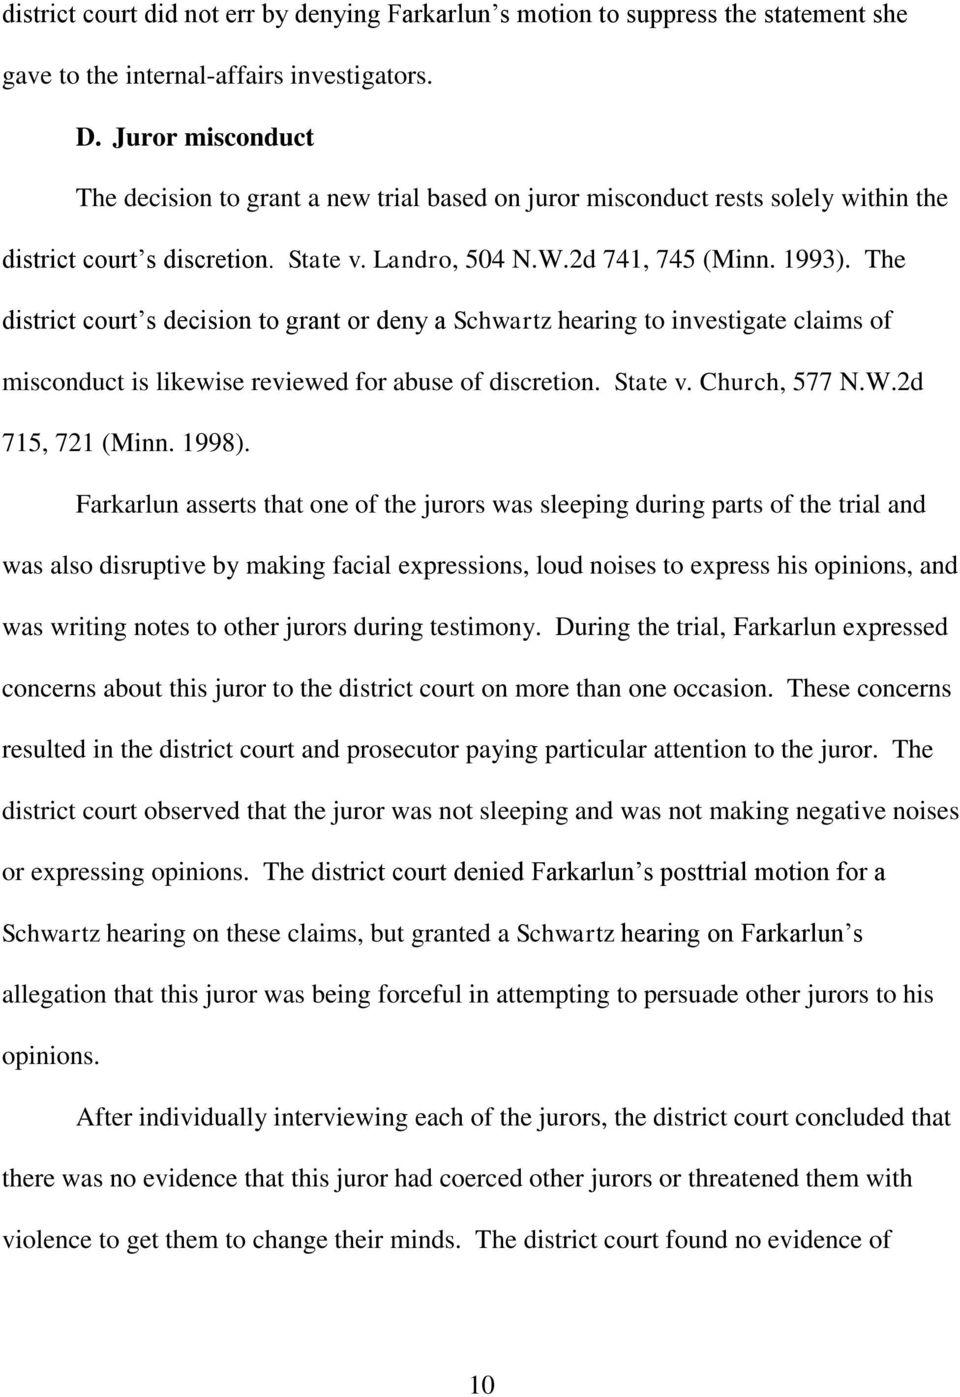 The district court s decision to grant or deny a Schwartz hearing to investigate claims of misconduct is likewise reviewed for abuse of discretion. State v. Church, 577 N.W.2d 715, 721 (Minn. 1998).